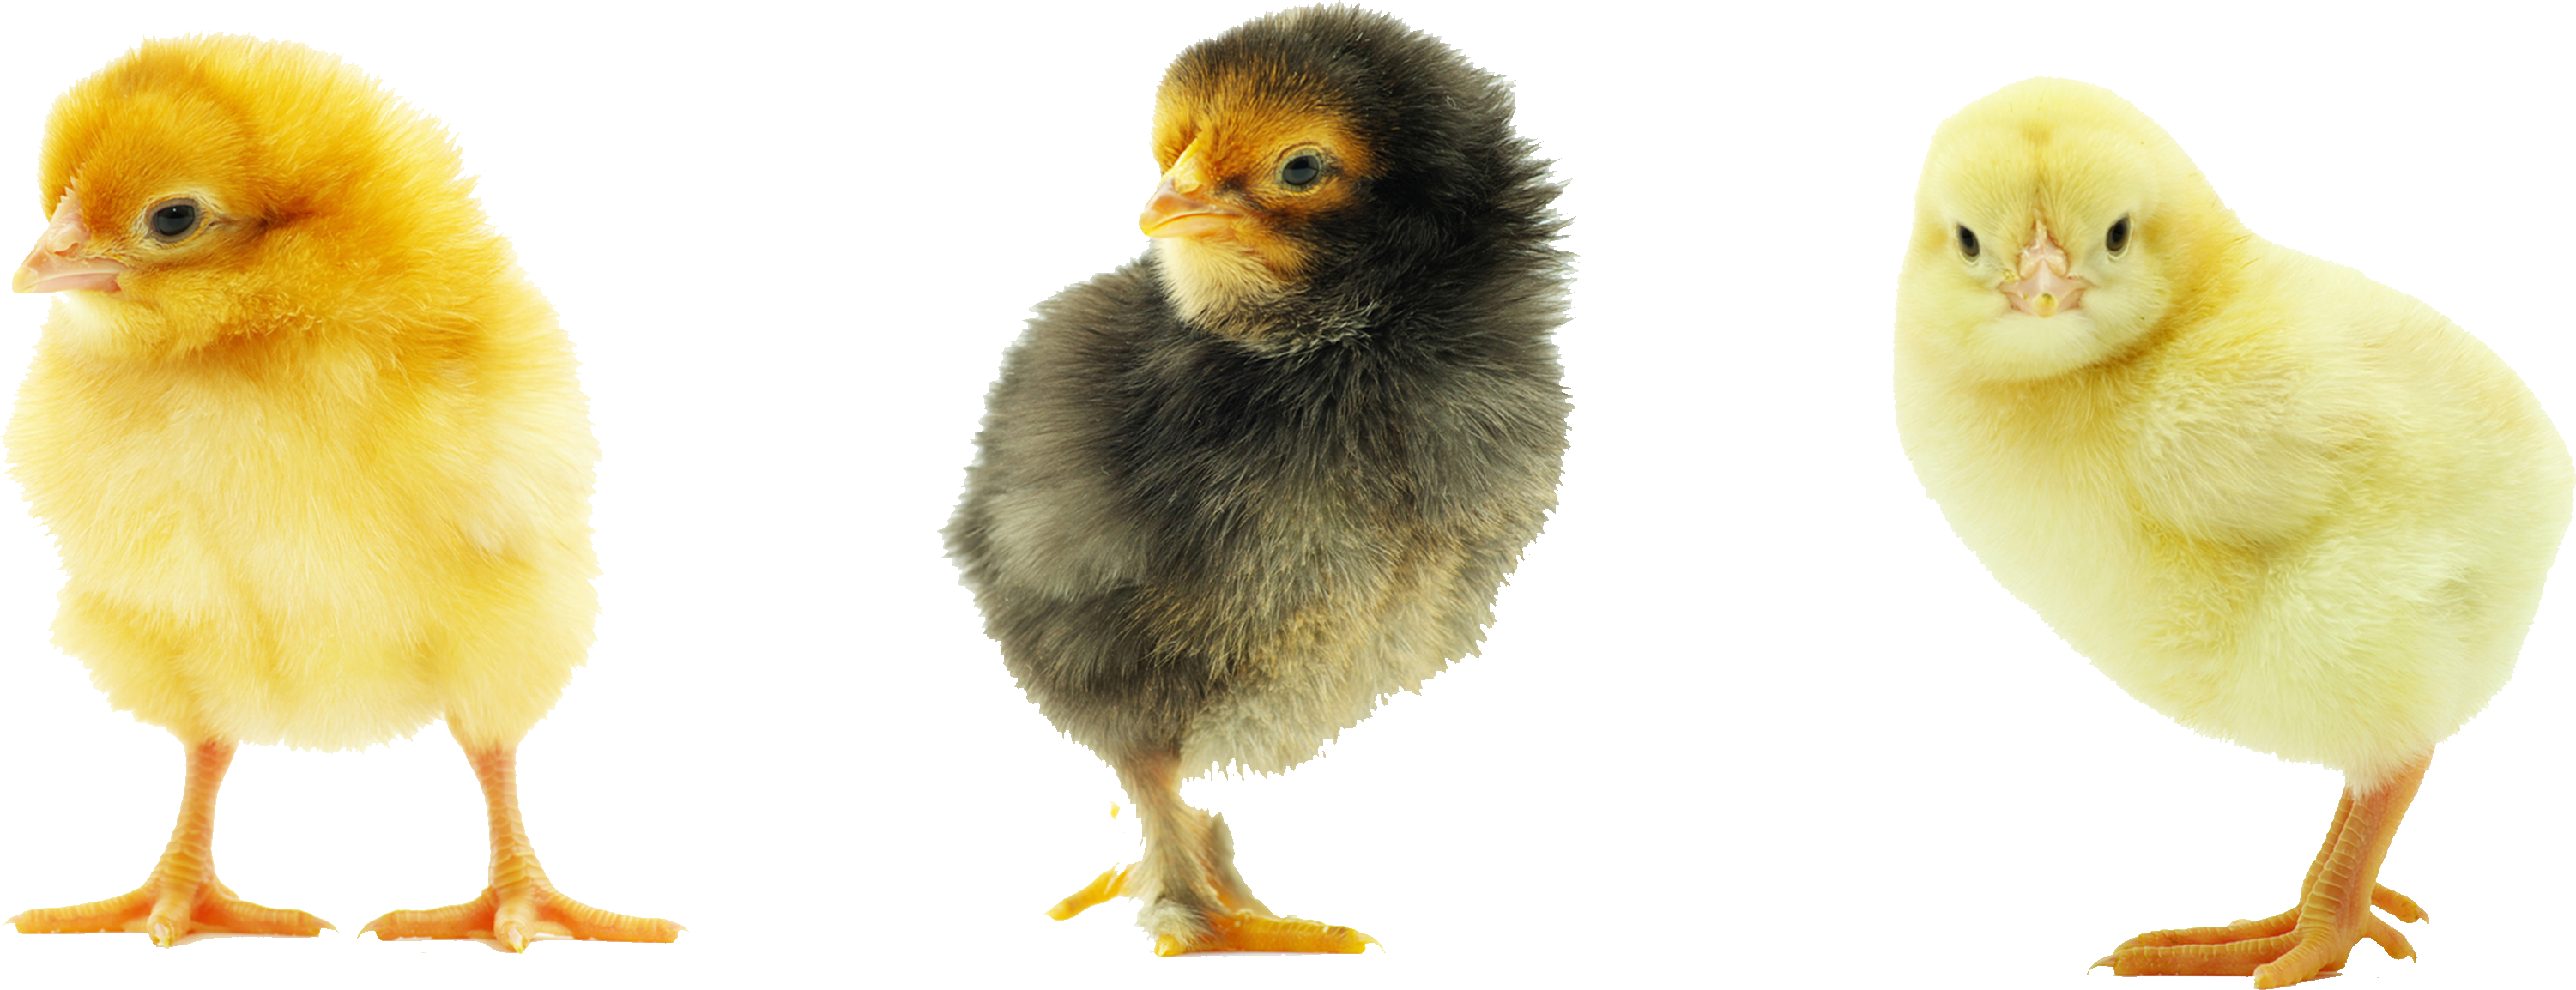 Chick png images free. Chickens clipart transparent background